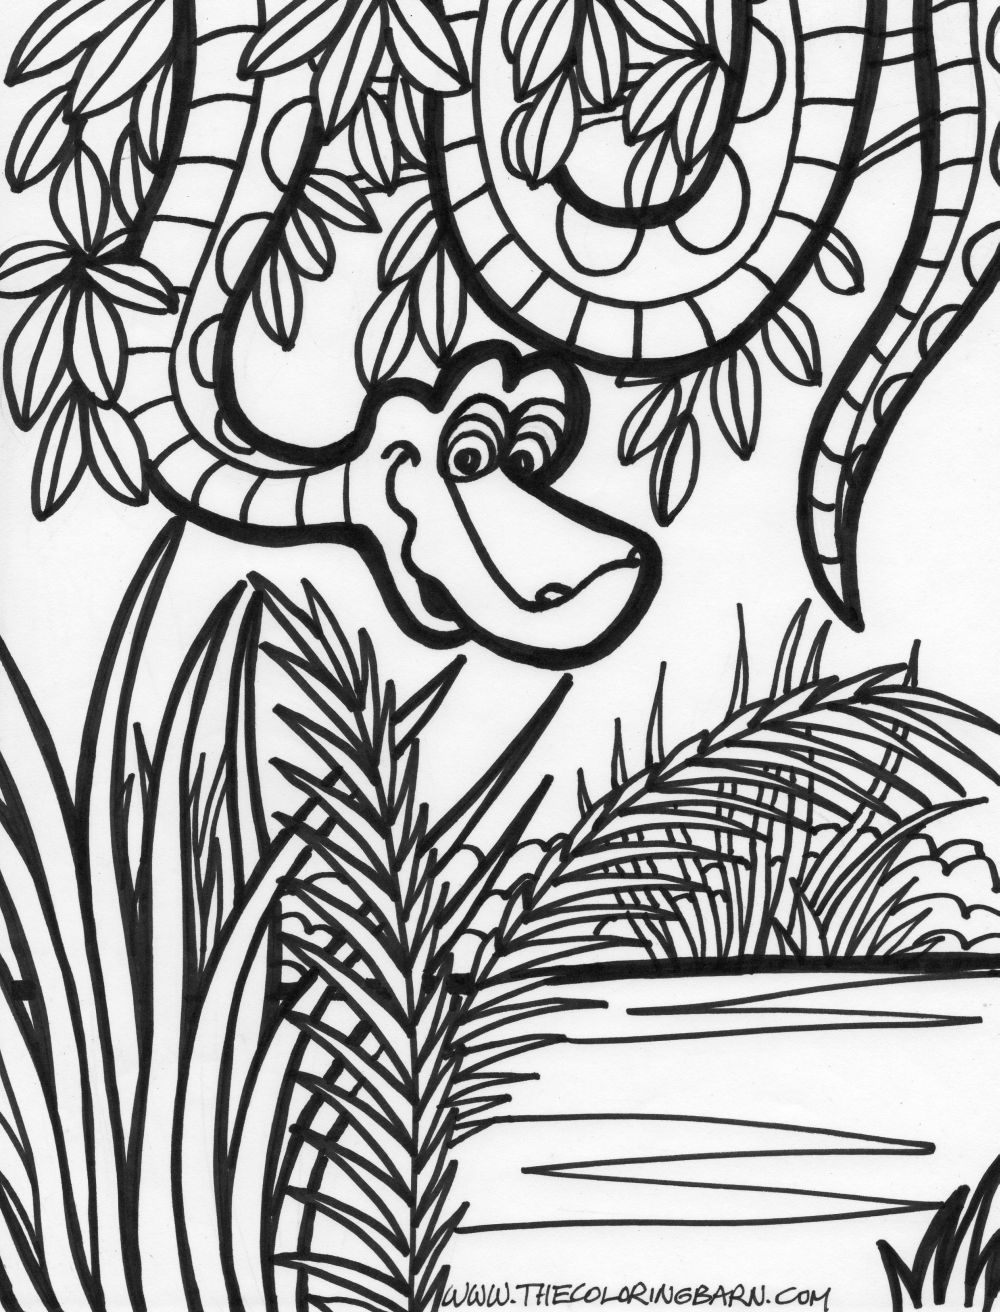 Jungle Coloring Pages Animal Coloring Pages Jungle Coloring Pages Bird Coloring Pages